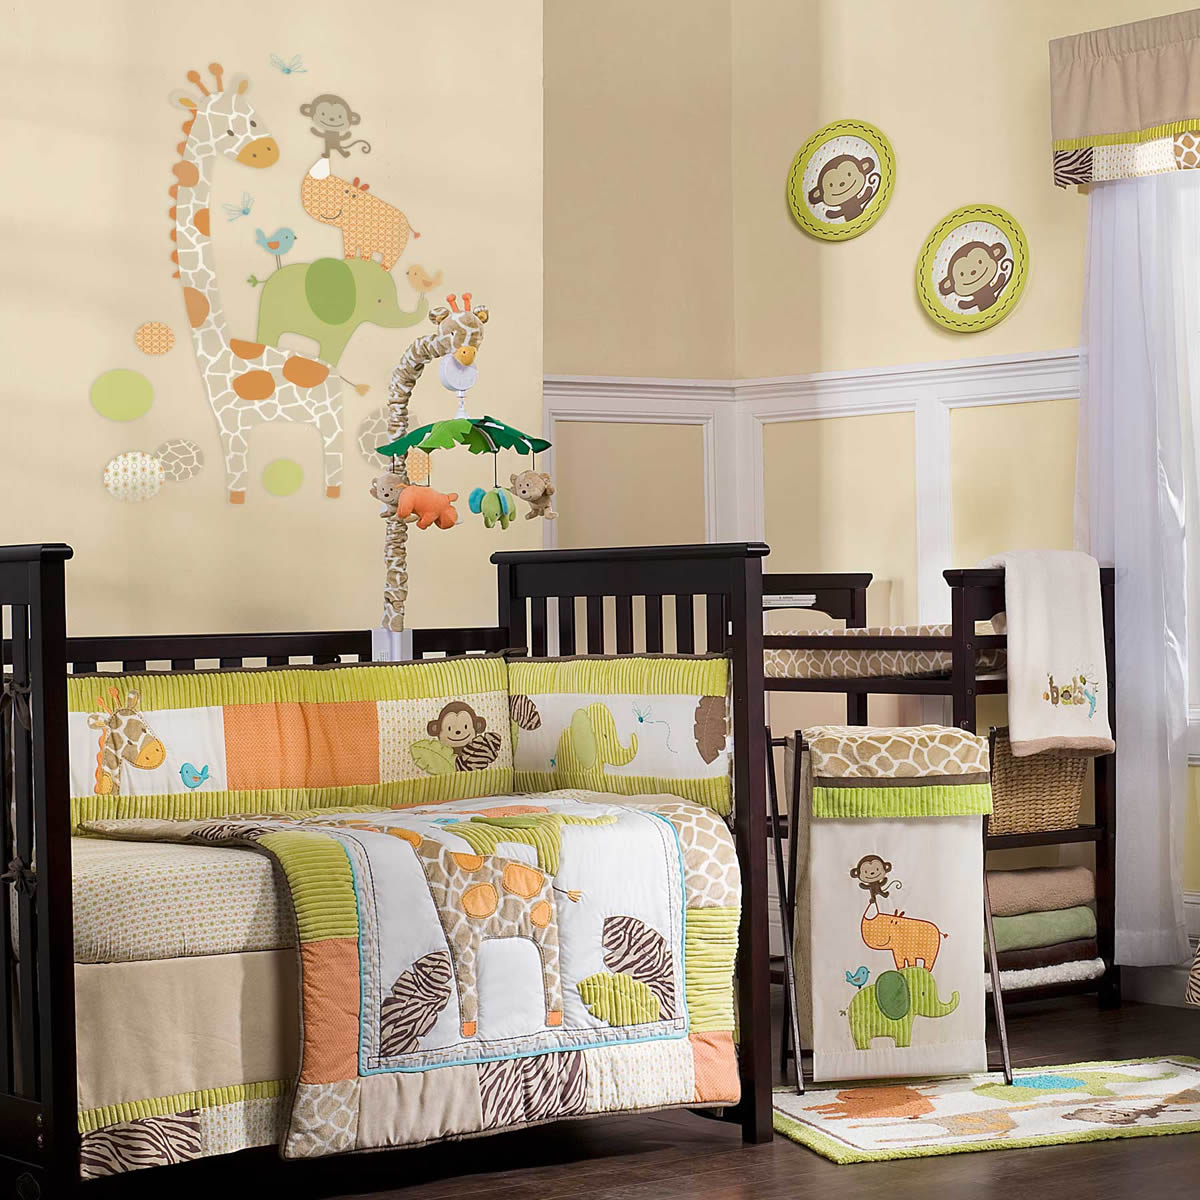 Carter's Wildlife 4 Piece Crib Bedding Set